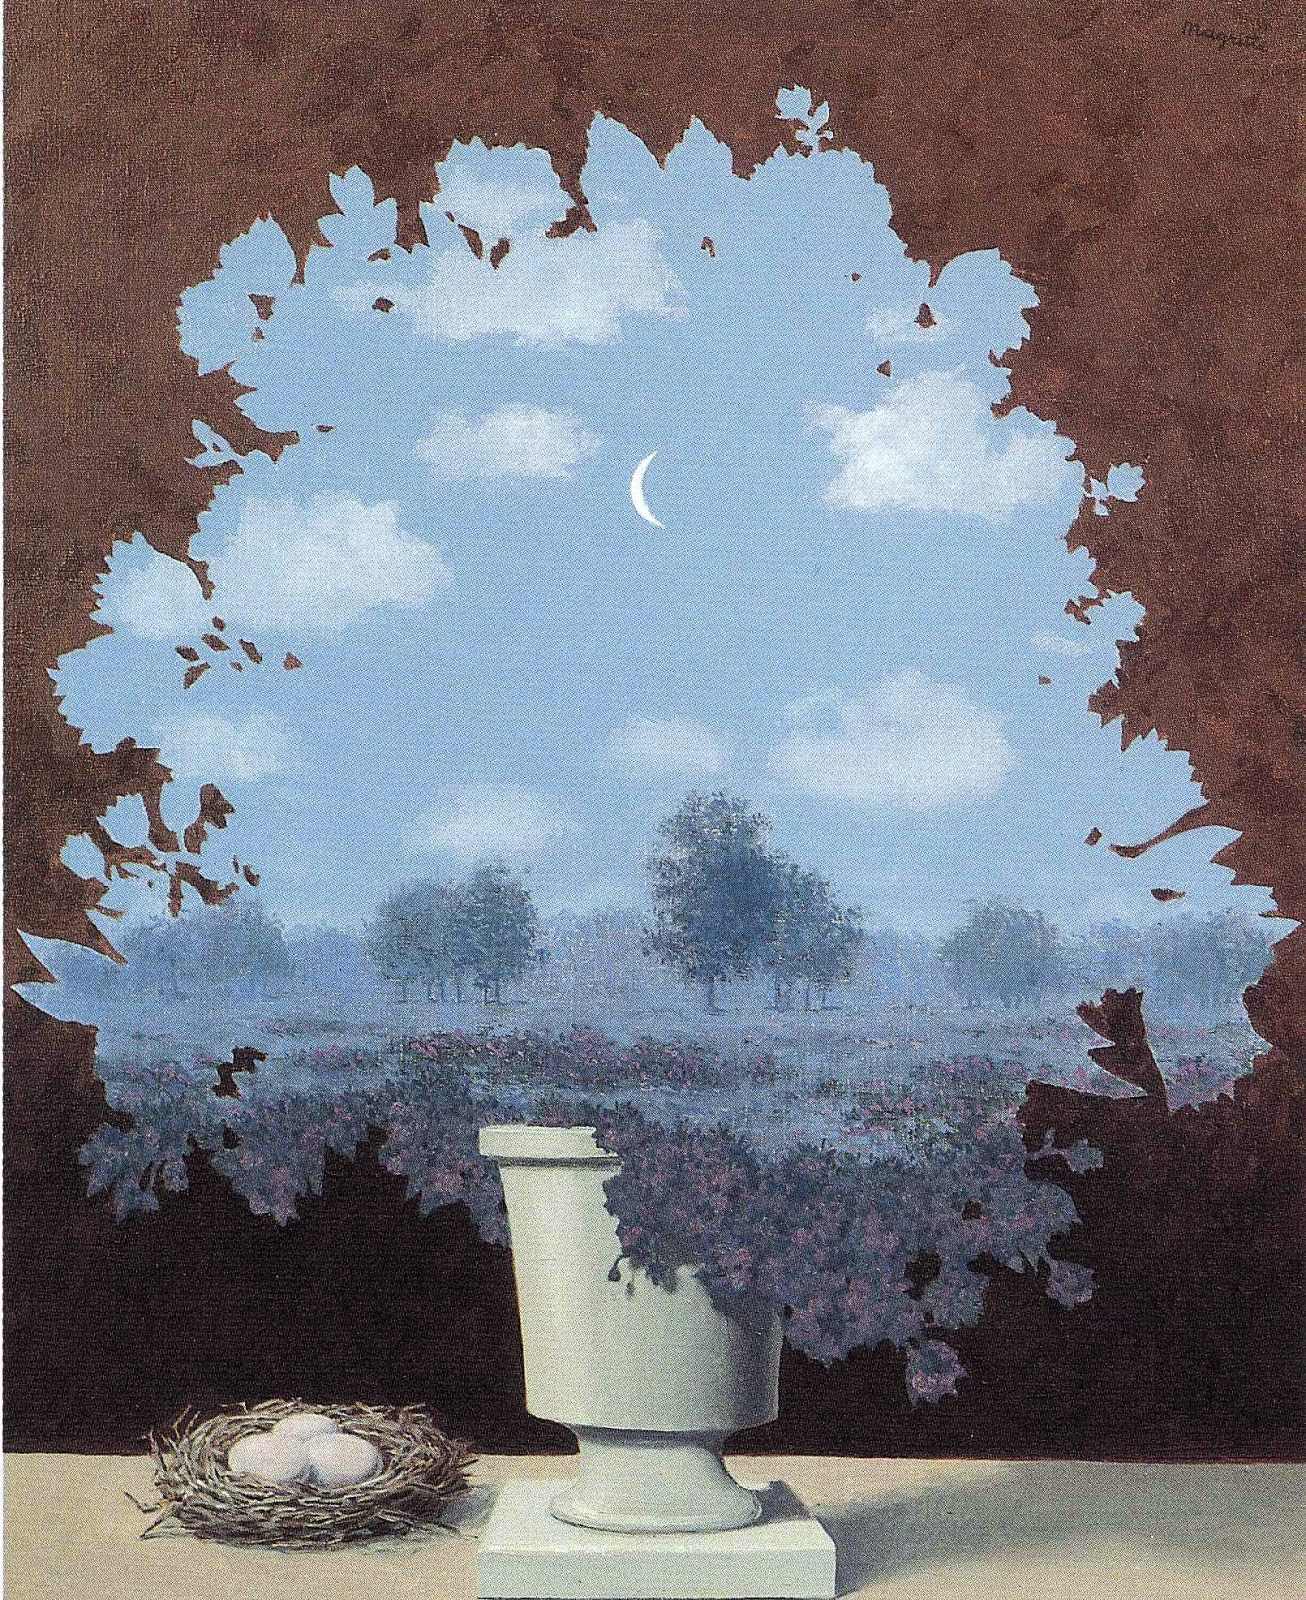 000...Surrealismo...000 - Página 2 Rene+Magritte+the-land-of-miracles-1964(1)